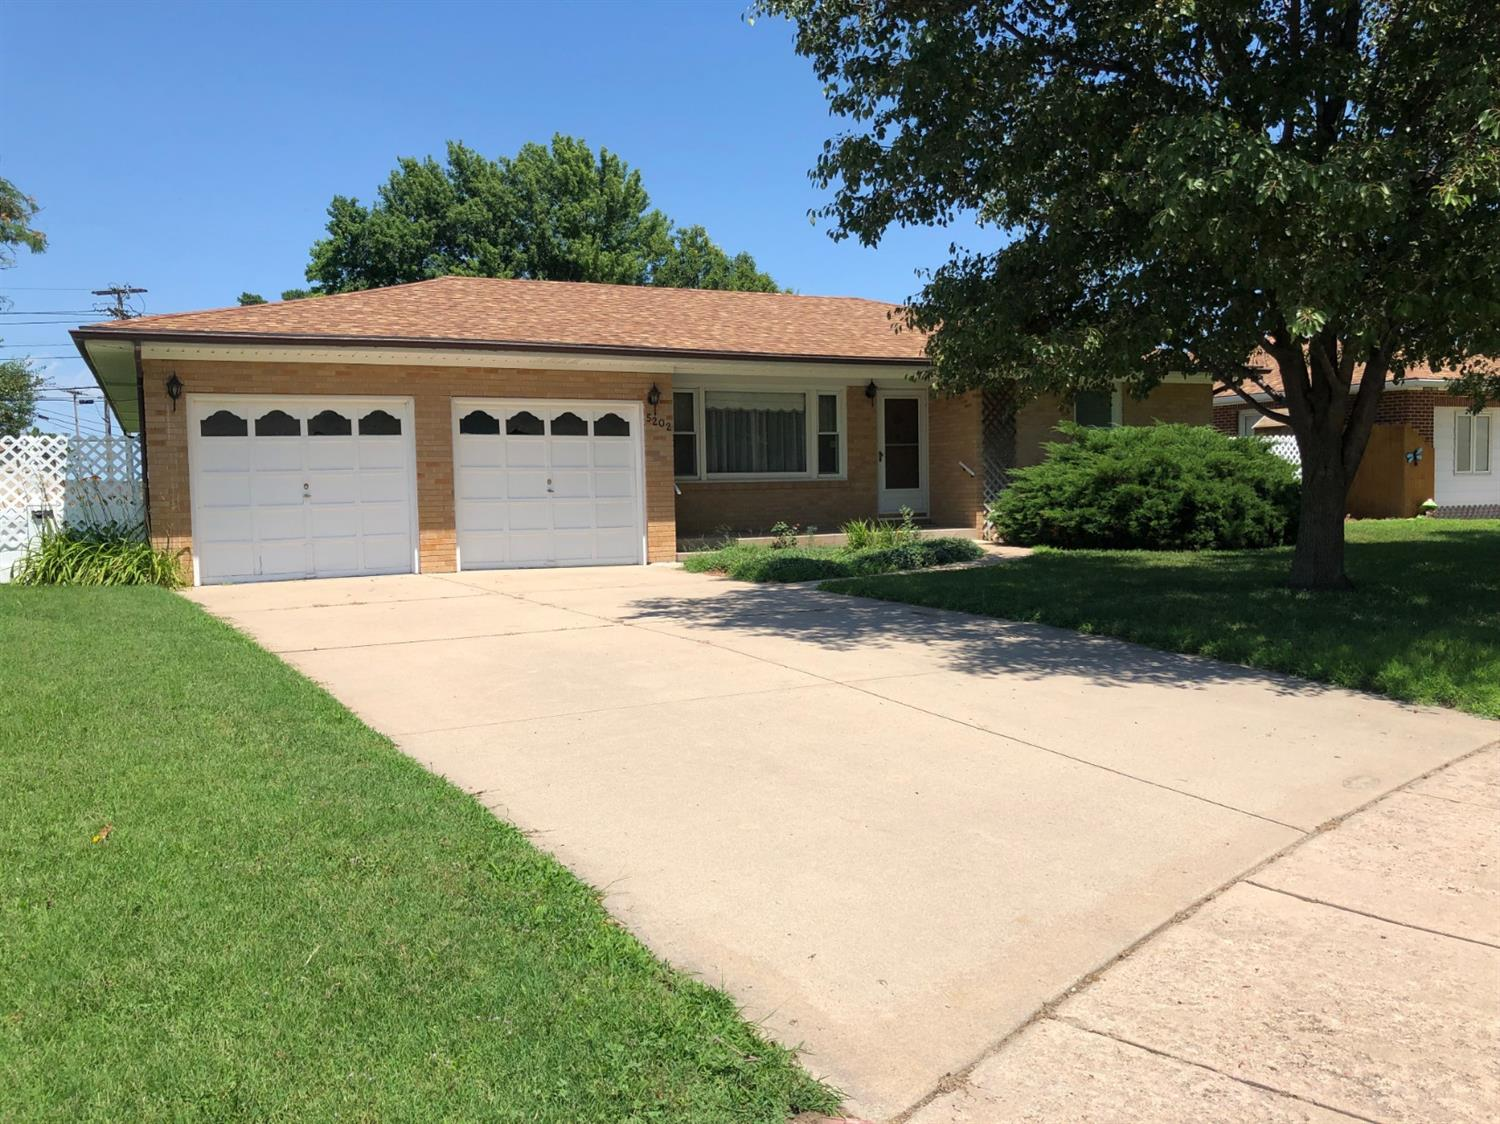 Well maintained 4 bedroom/2 bath brick home.  Newer roof, replacement windows, CH/CA-2014 & D/A garage. All on 1 level. Great value per sq. ft.